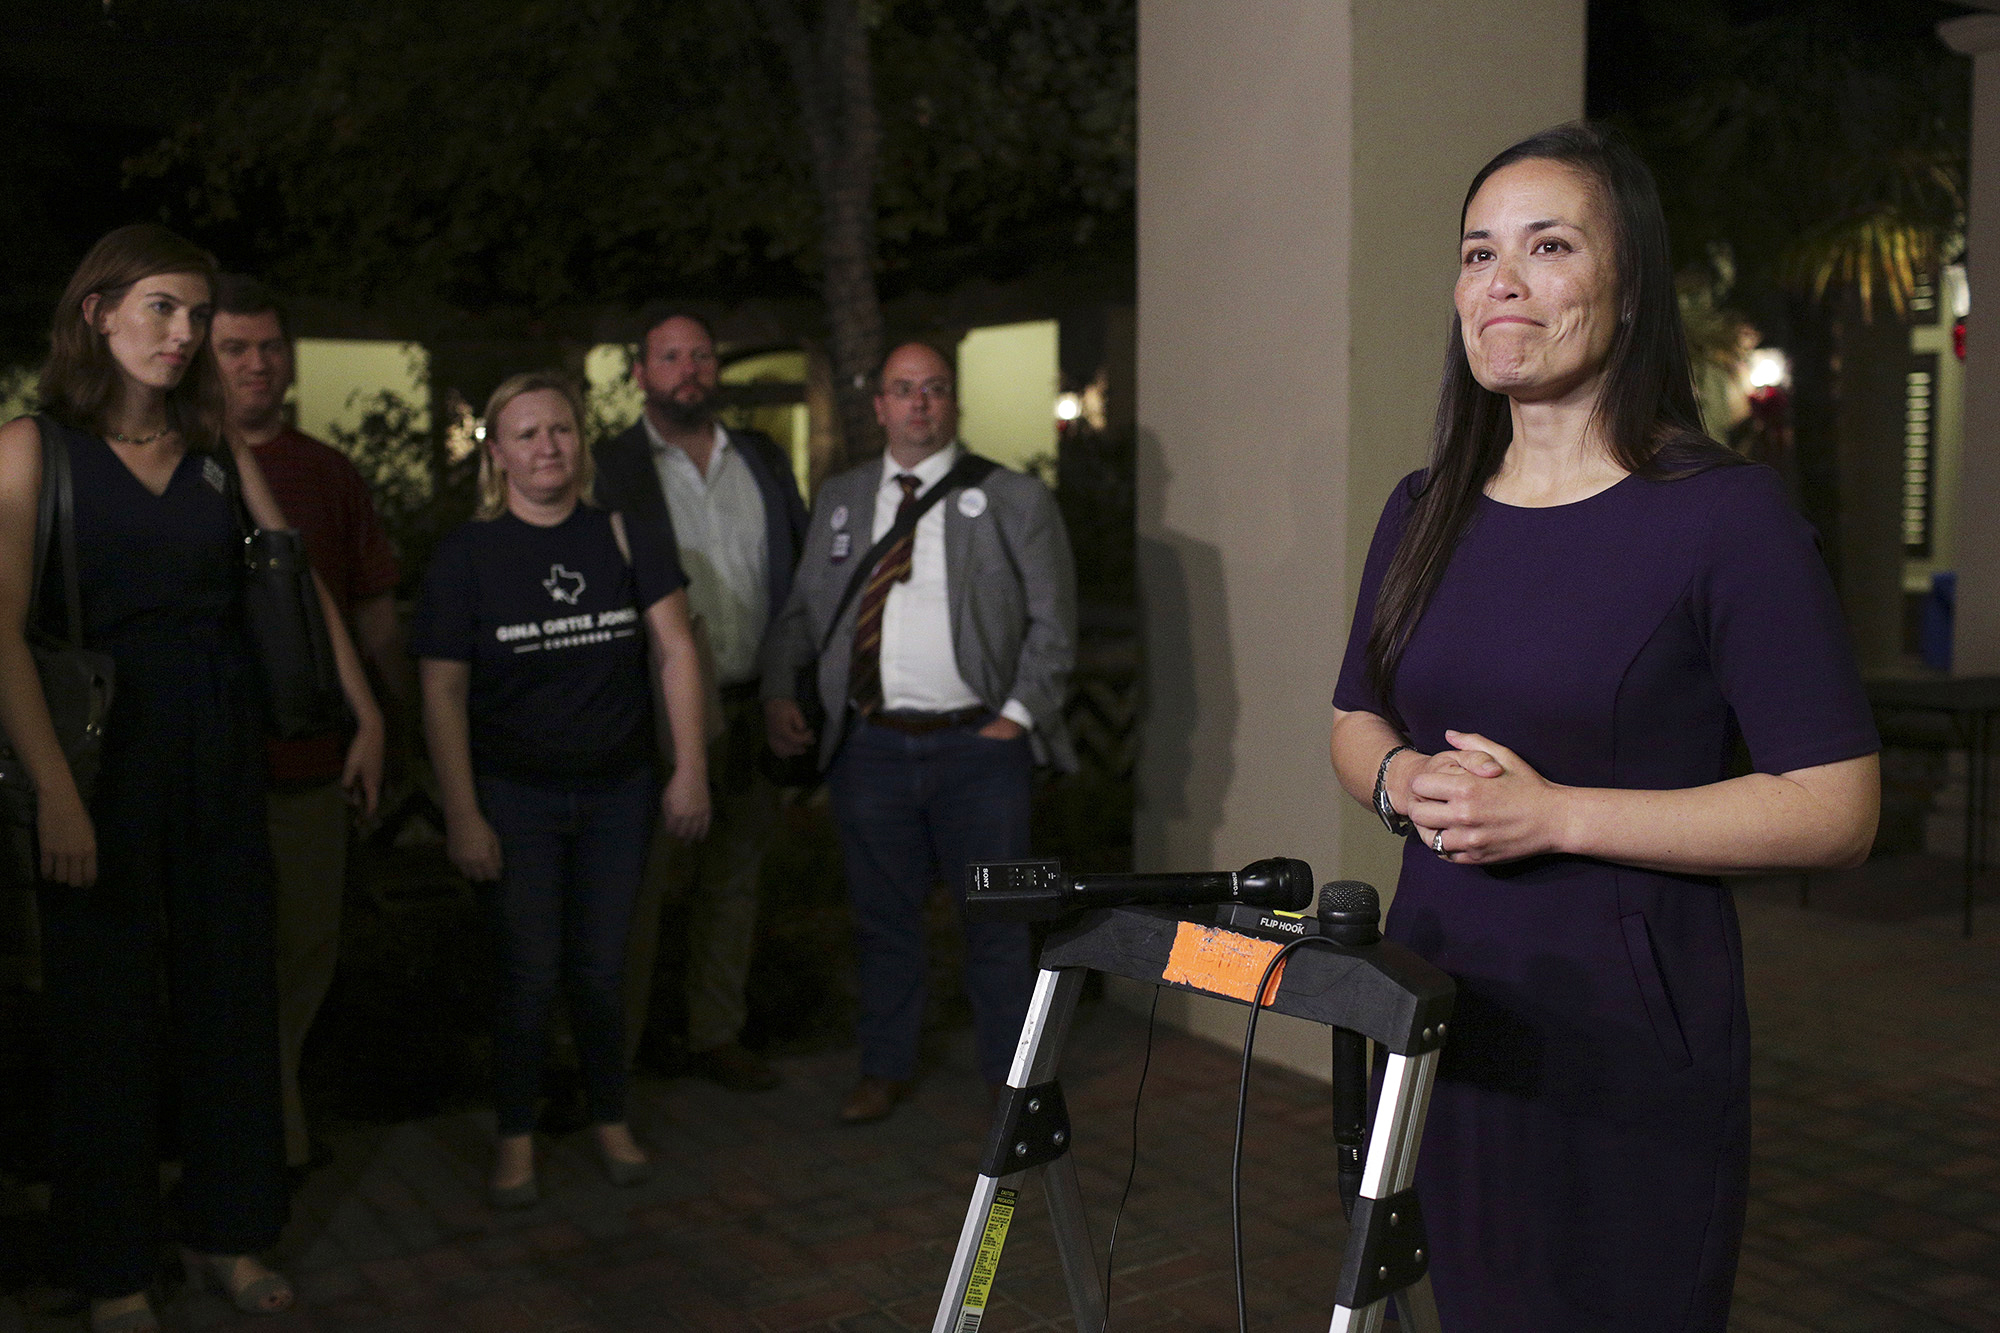 In this Tuesday, Nov. 6, 2018, file photo, Gina Ortiz Jones speaks to the media in San Antonio. Ortiz Jones is among the LGBTQ candidates with a solid chance of winning a congressional seat in November 2020. (Lisa Krantz/The San Antonio Express-News via AP, File)